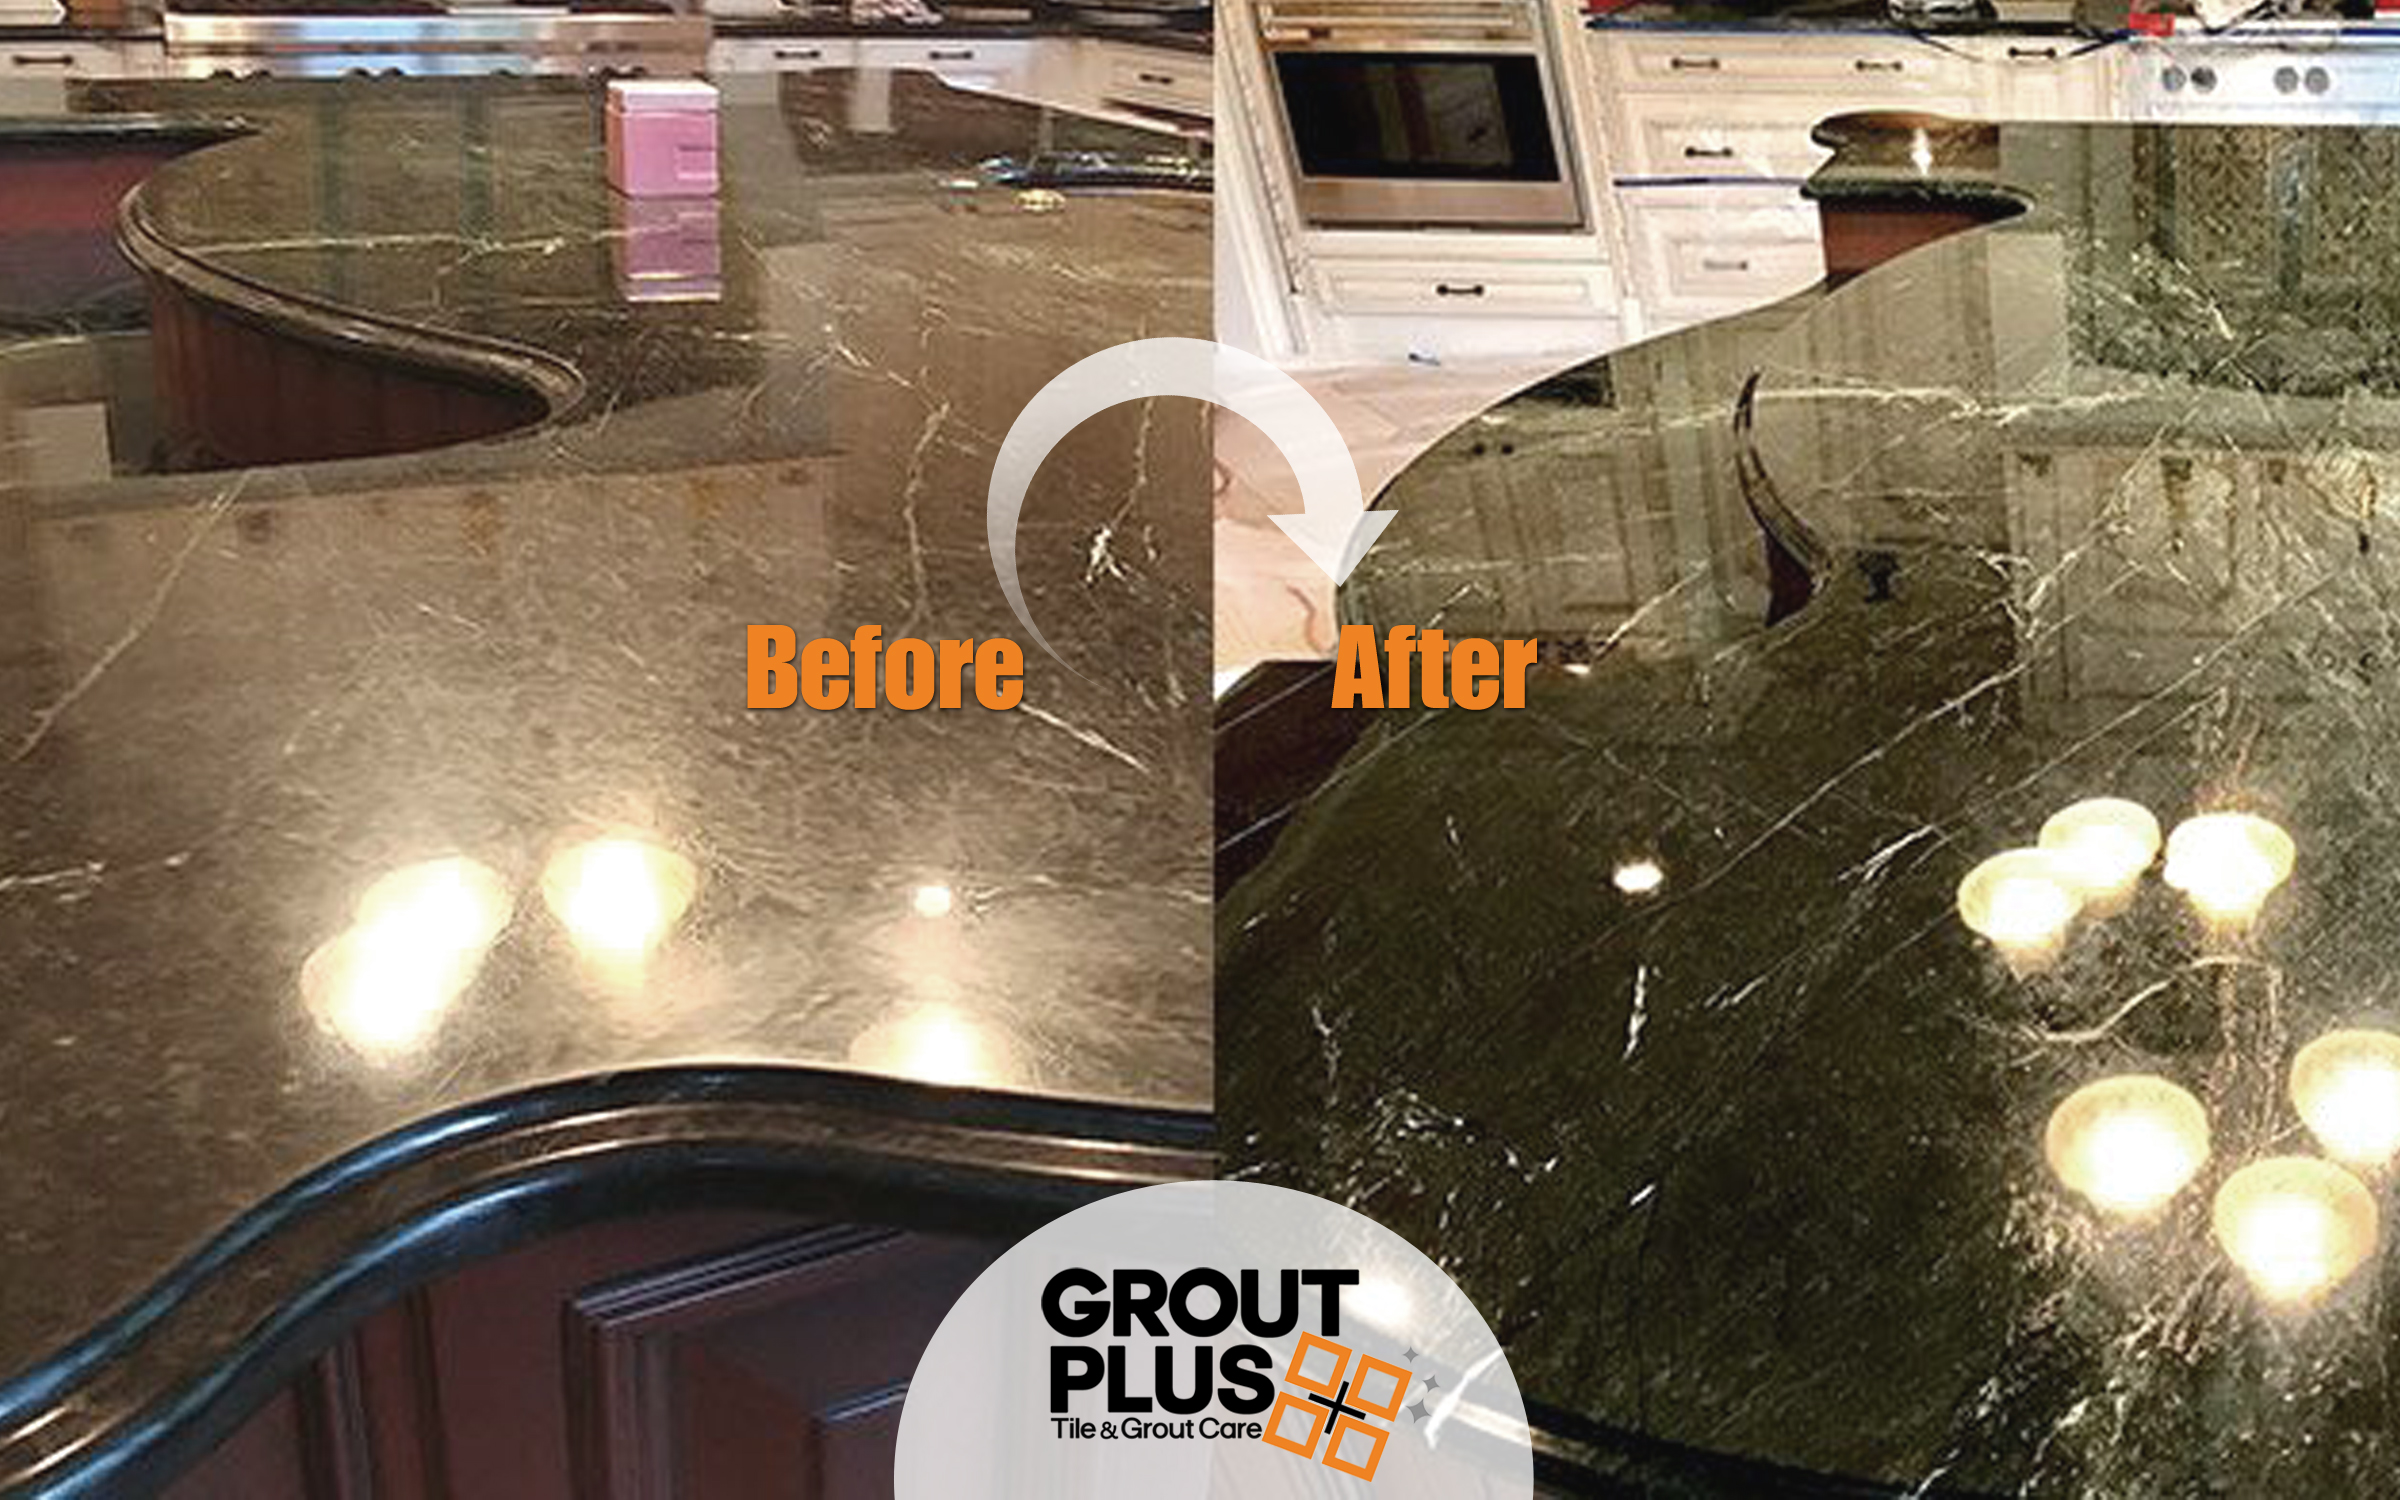 Grout Plus Before After Tile Grout16.jpg